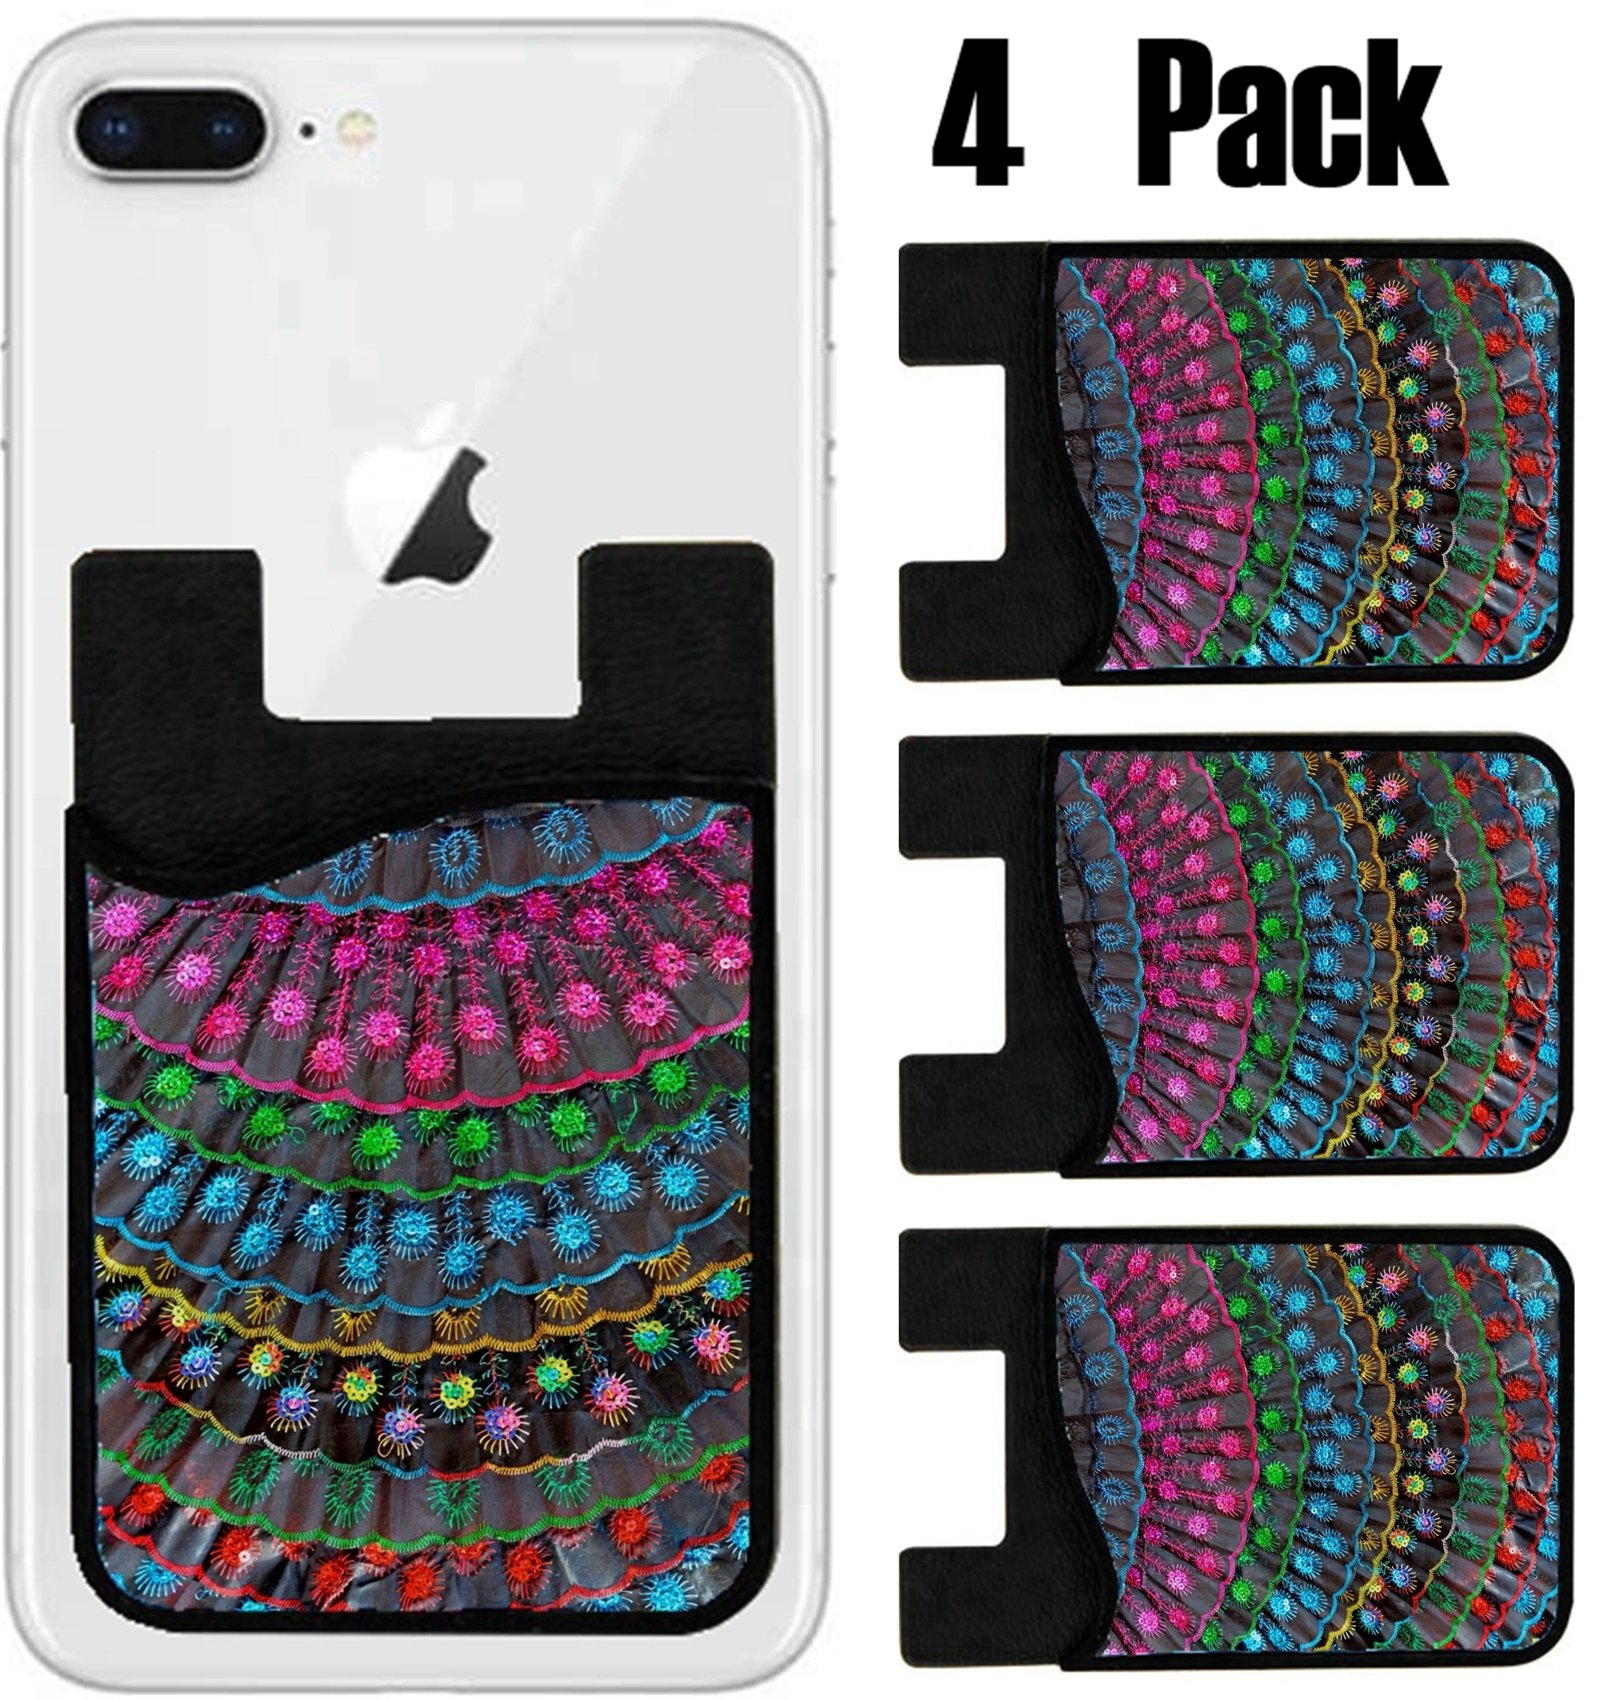 MSD Phone Card holder, sleeve/wallet for iPhone Samsung Android and all smartphones with removable microfiber screen cleaner Silicone card Caddy(4 Pack) IMAGE ID 34991524 Decorative Fans